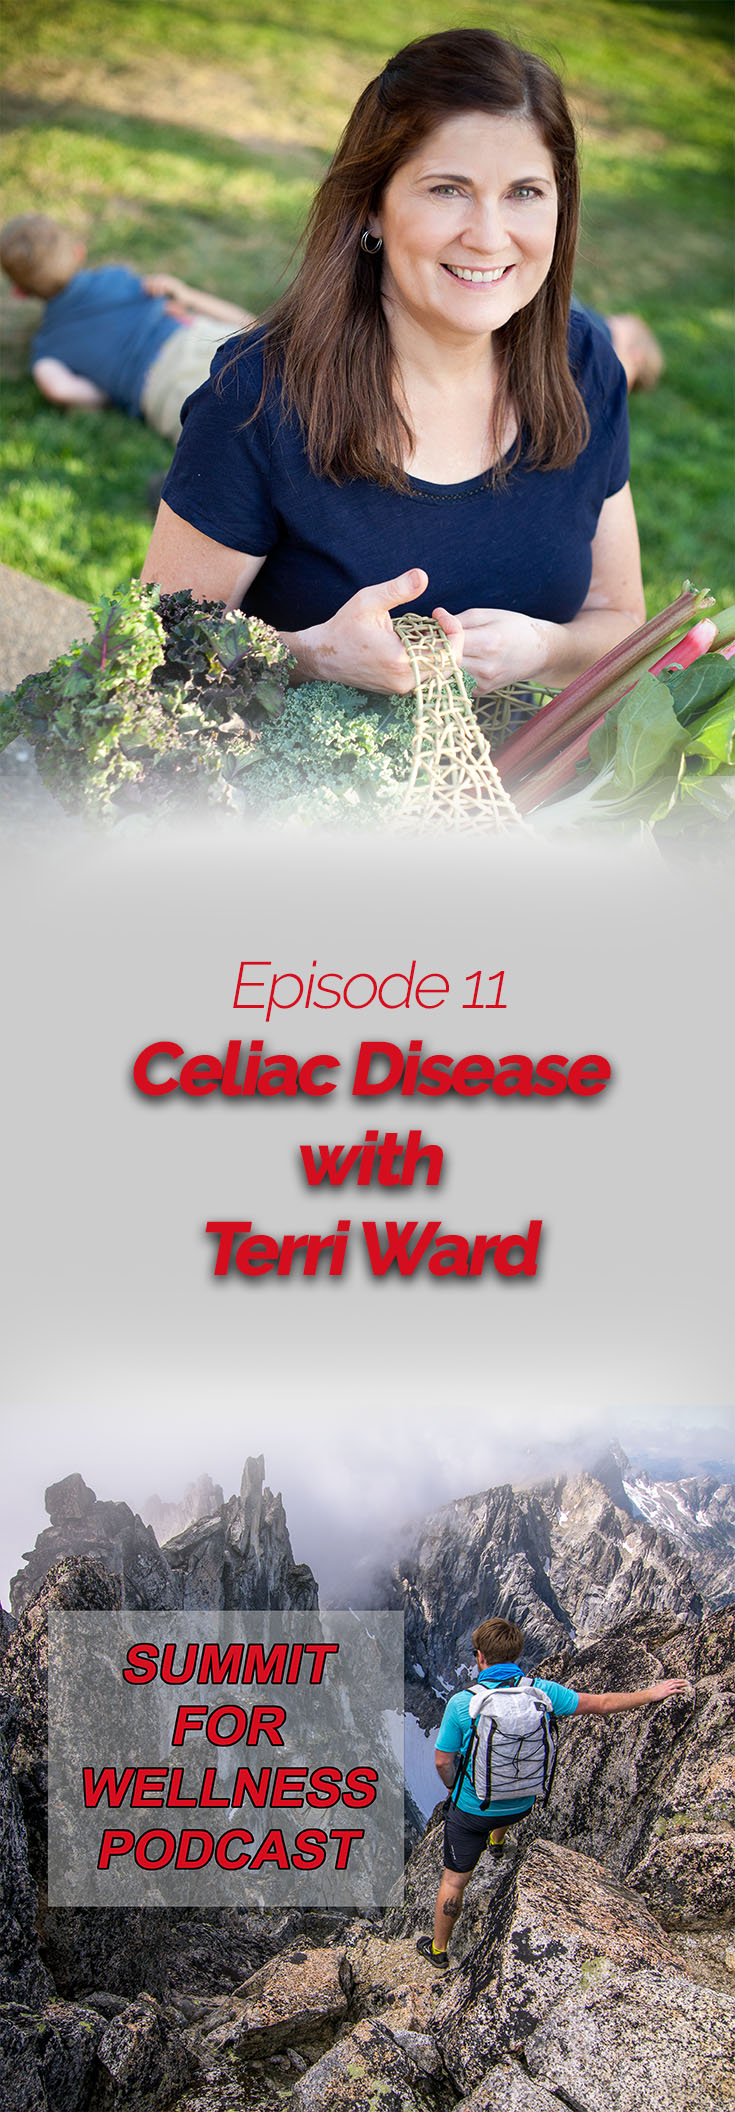 Terri Ward discusses everything you need to get started on helping Celiac Disease